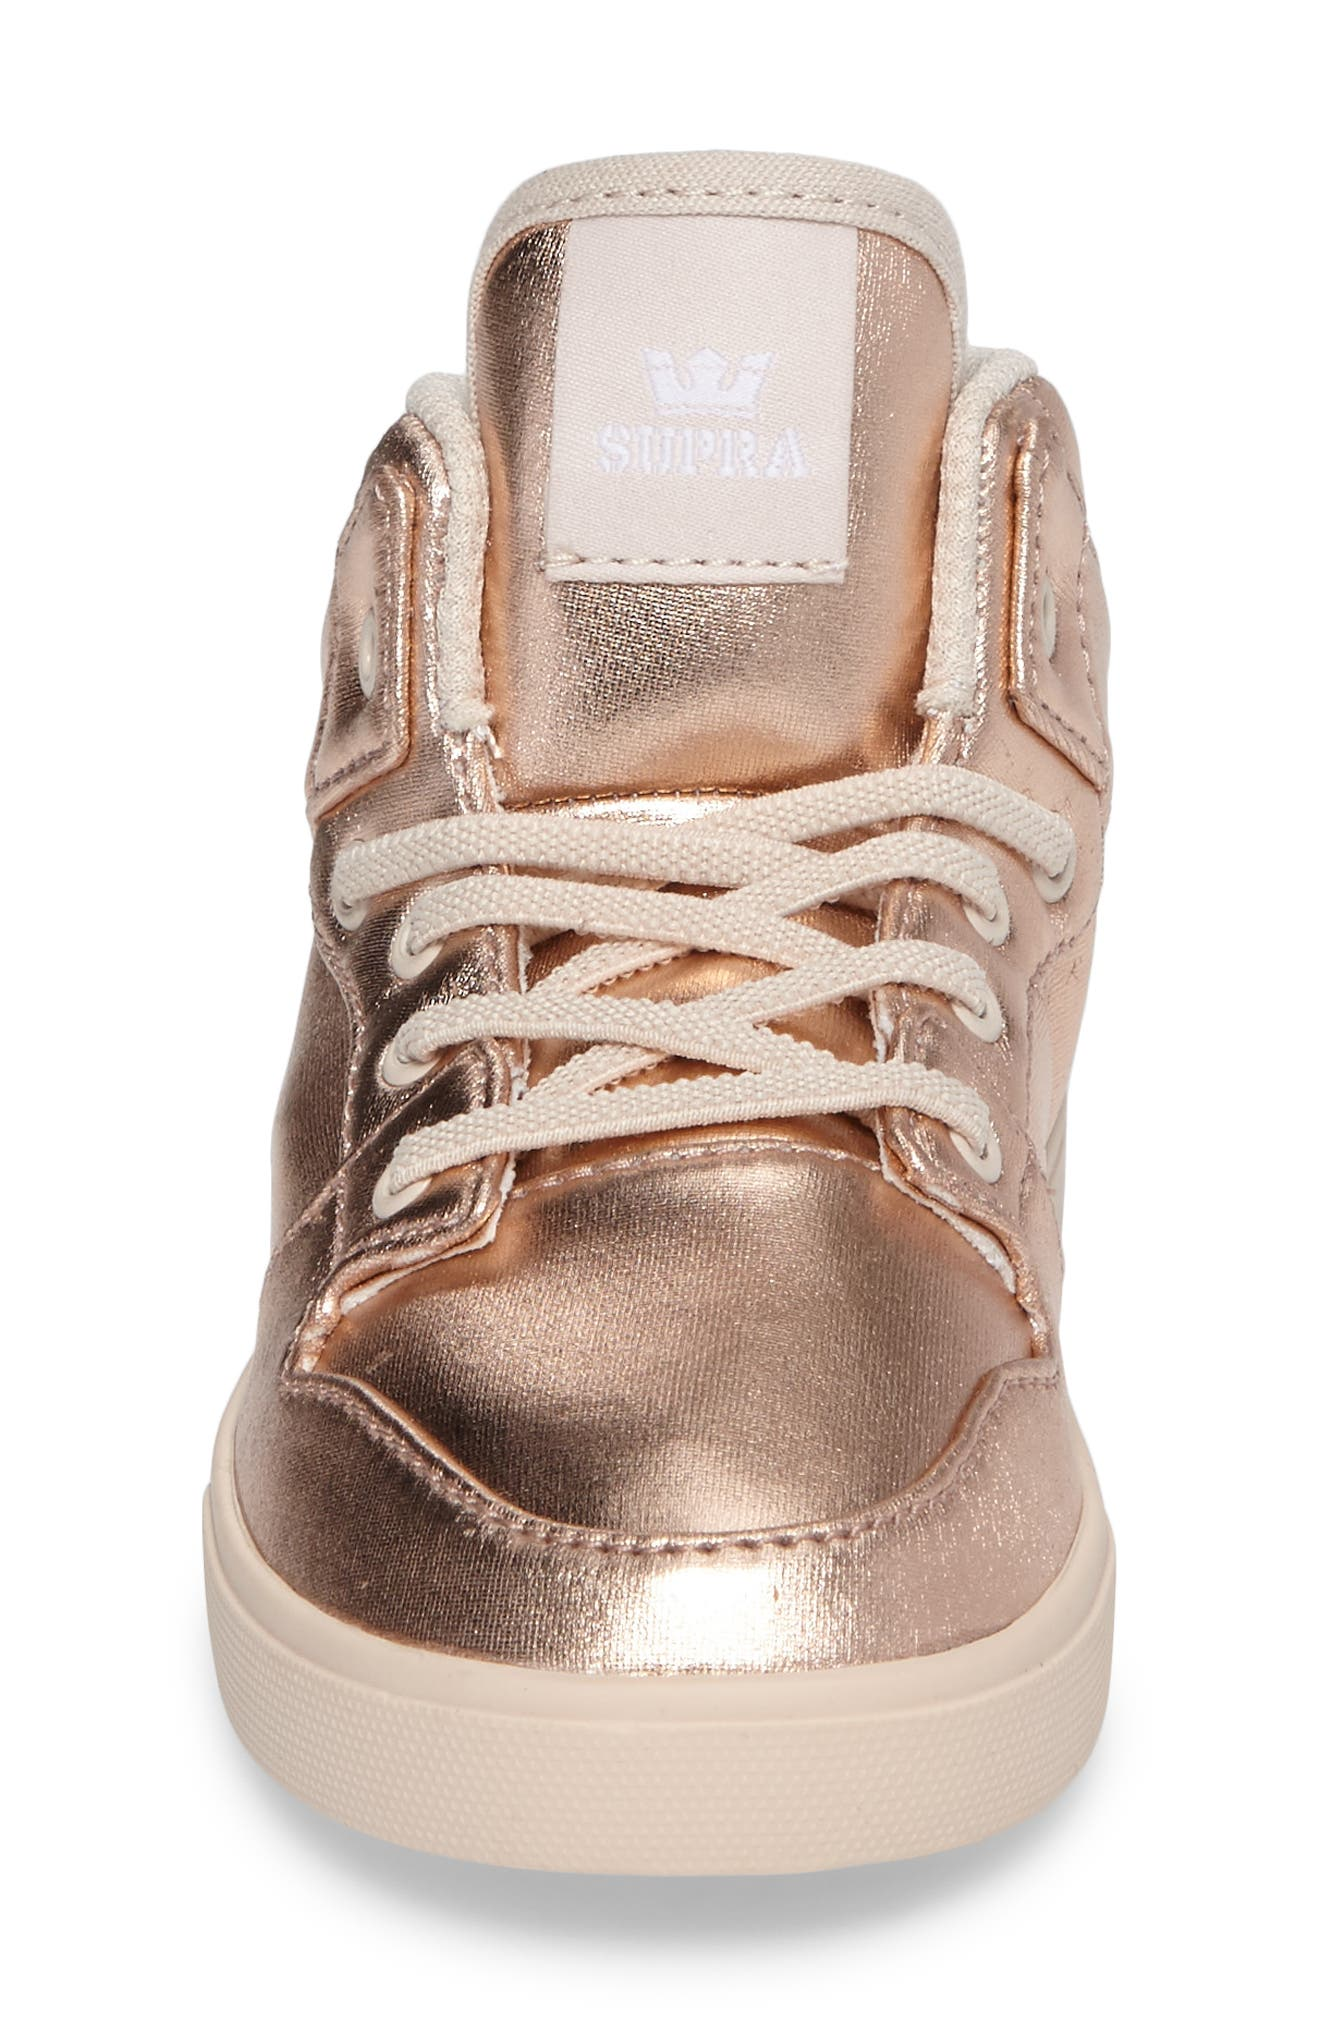 Vaider High Top Sneaker,                             Alternate thumbnail 4, color,                             220